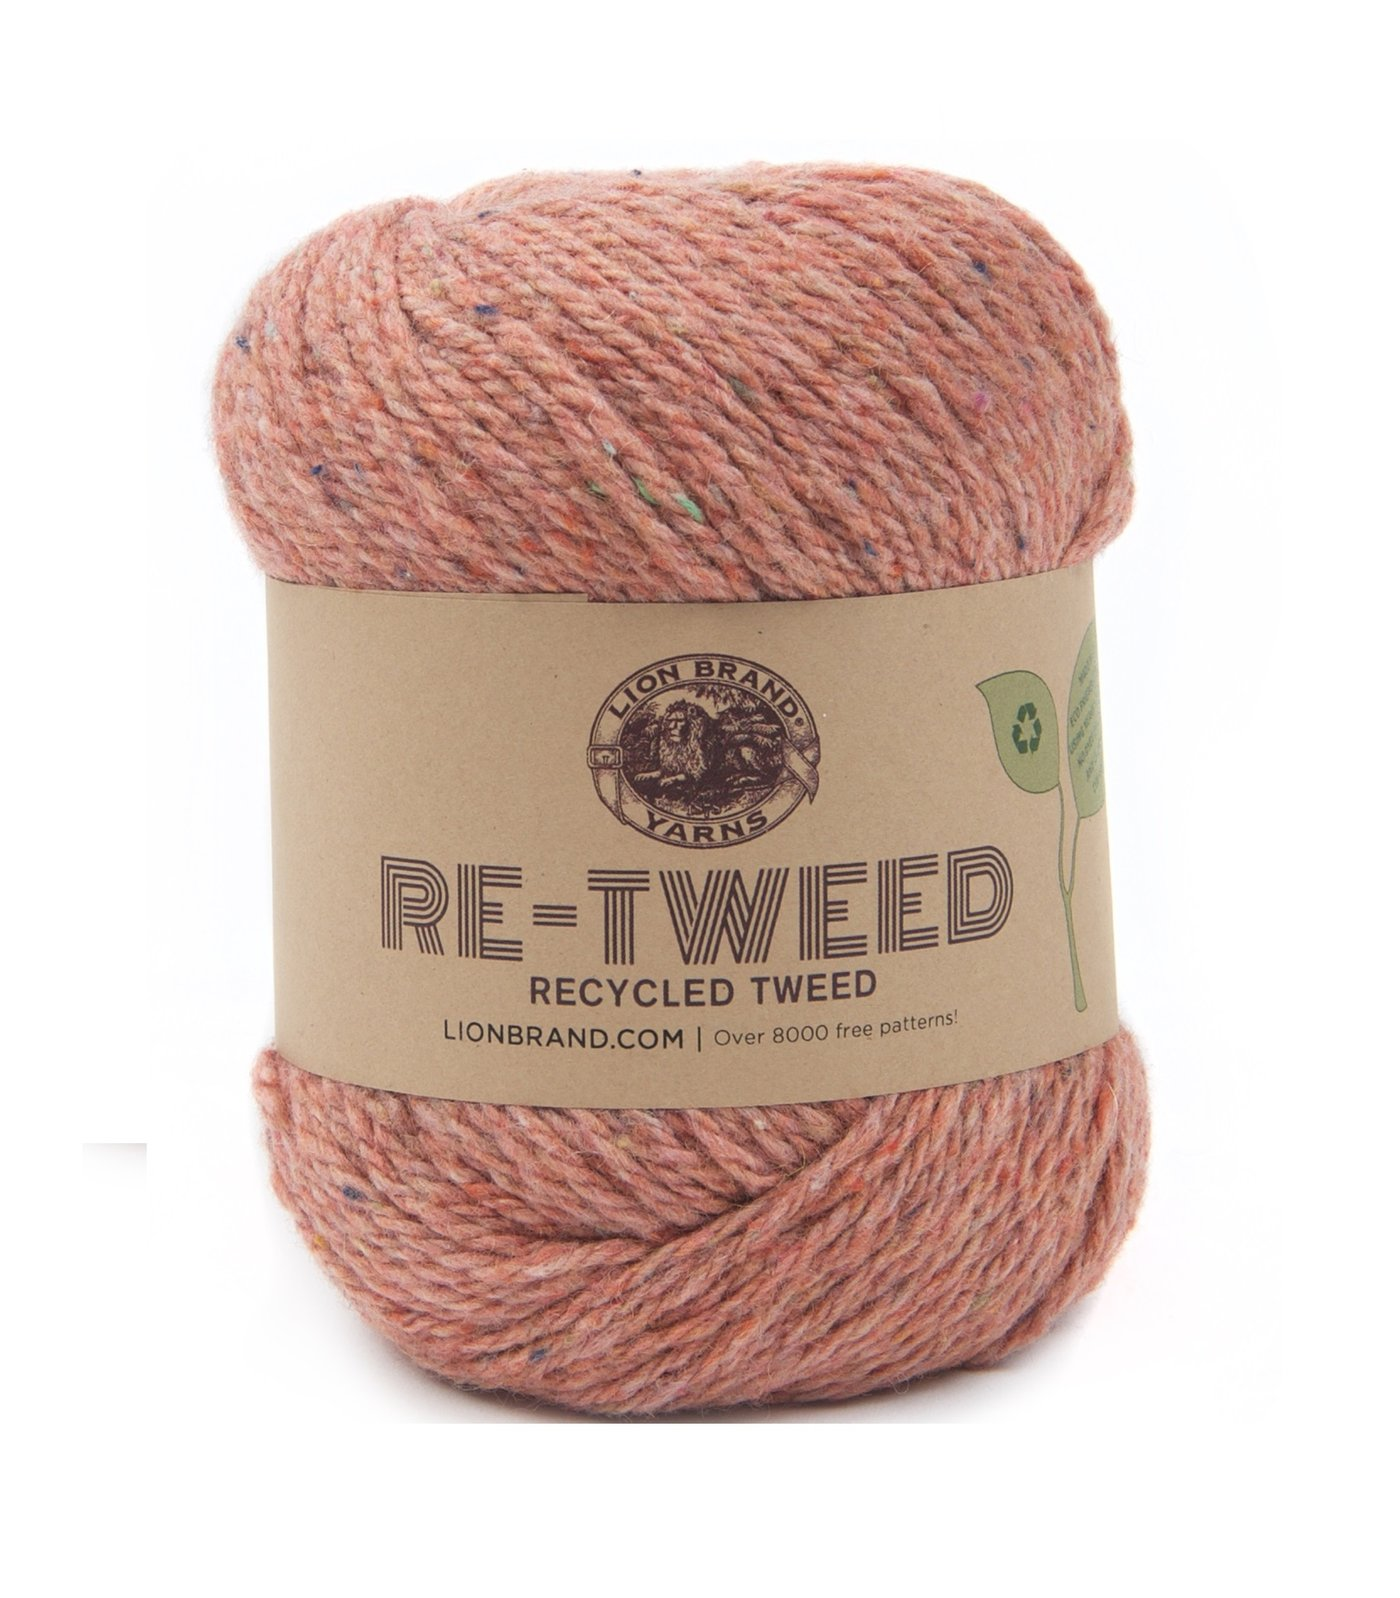 A rustic-look tweed yarn that comes in an array of muted natural colors